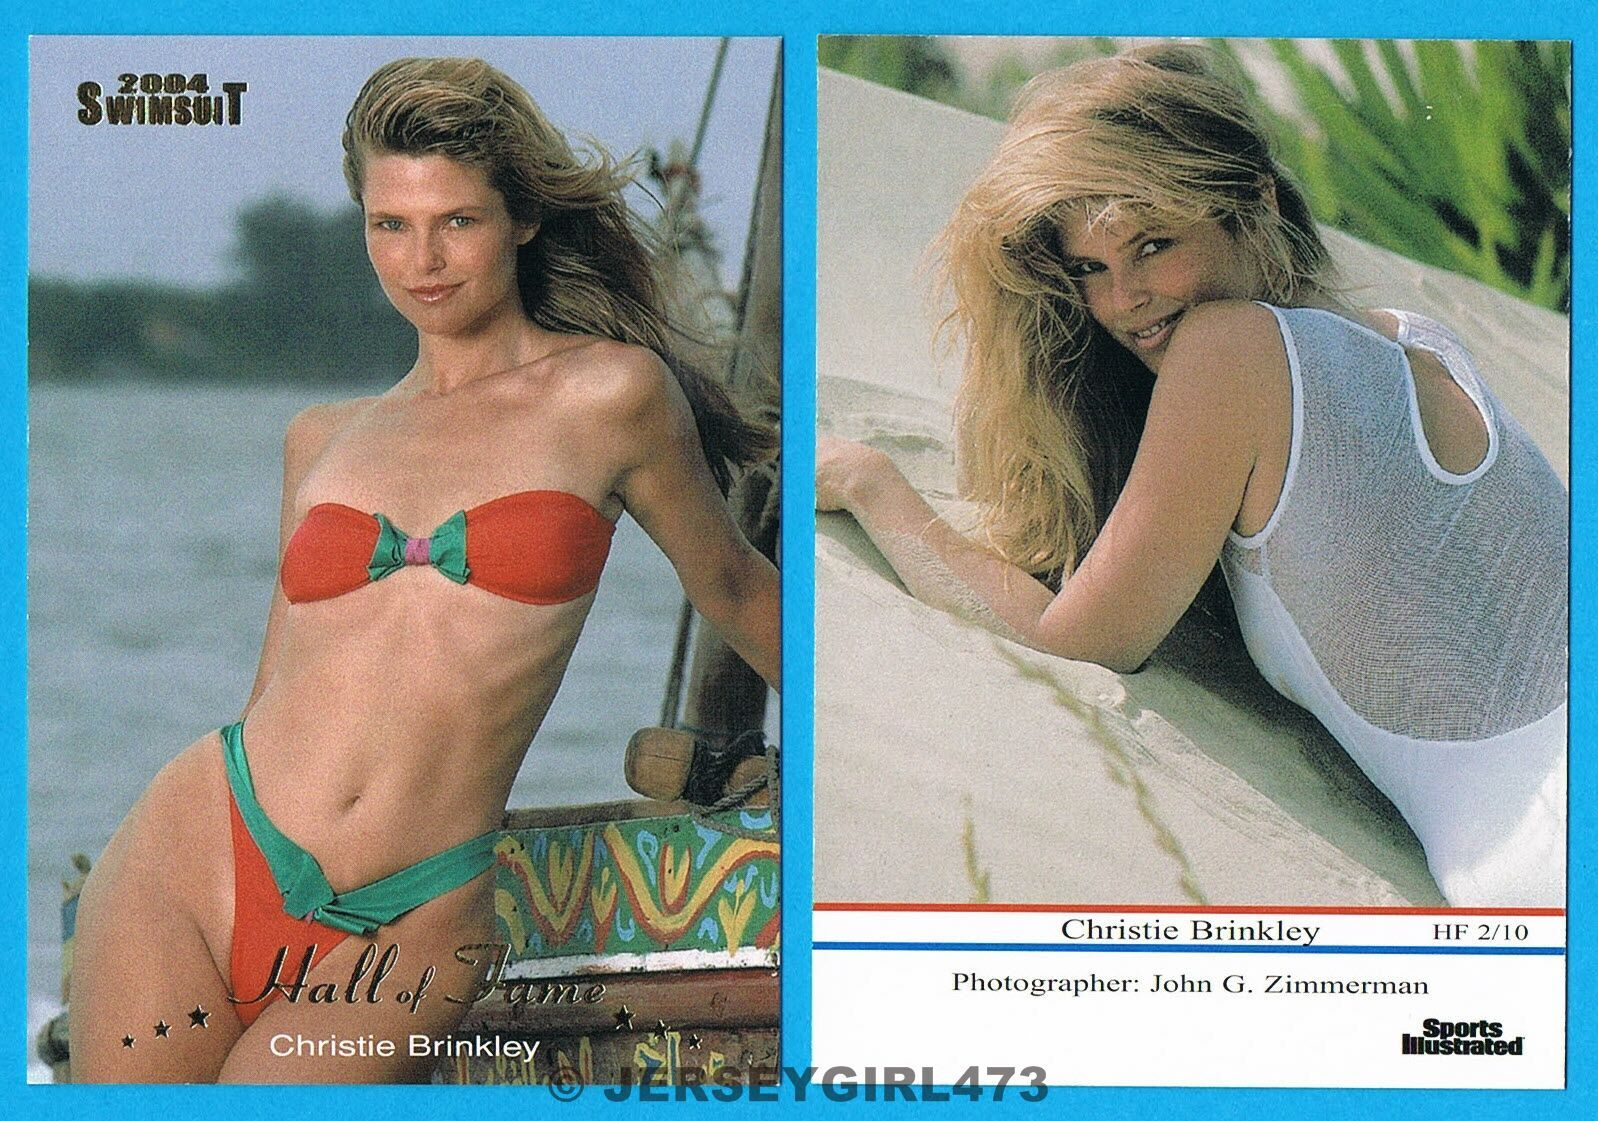 Christie Brinkley 2004 Sports Illustrated SI Swimsuit Hall of Fame Insert Card